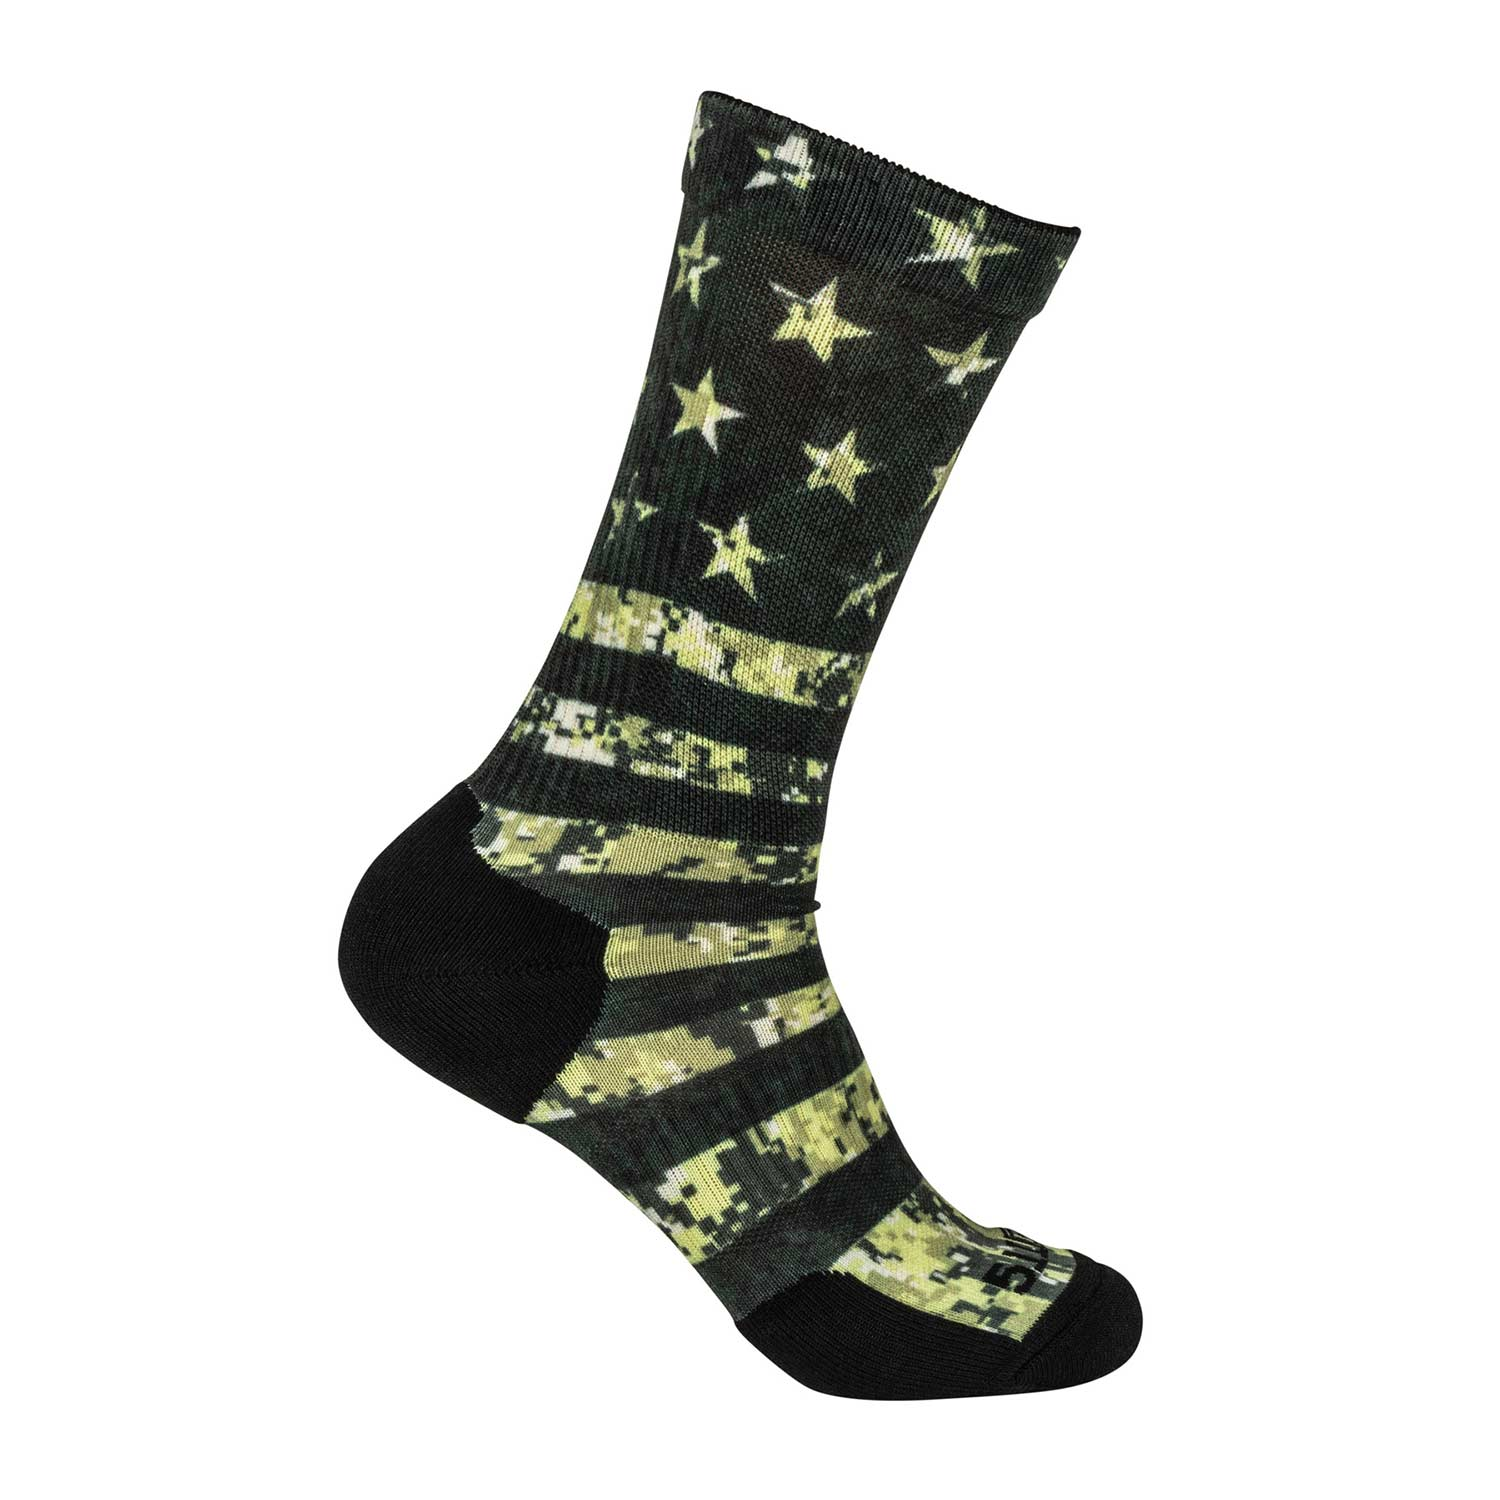 5.11 Sock and Awe Tactical Flag Crew Sock